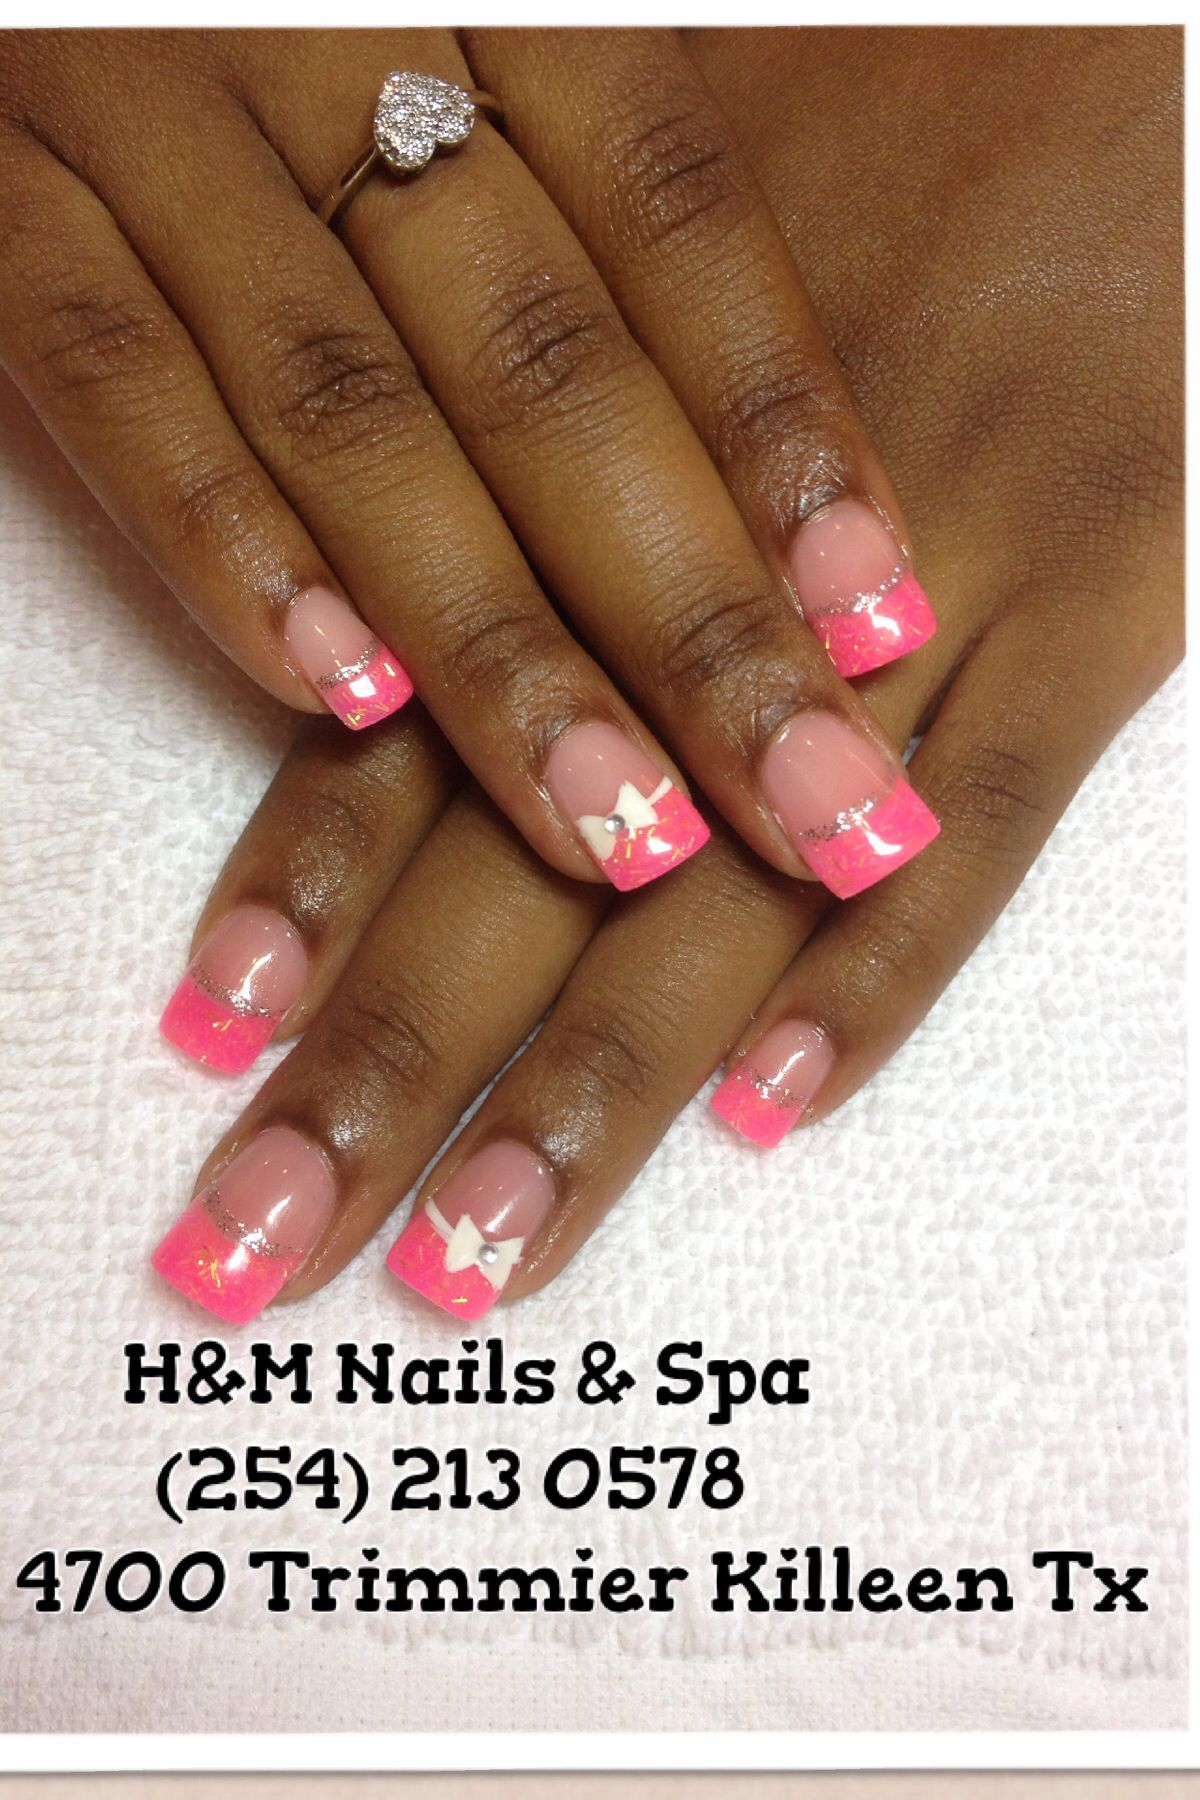 Pink solar nails and cute designs !!! Check out my fb page @ H&M ...